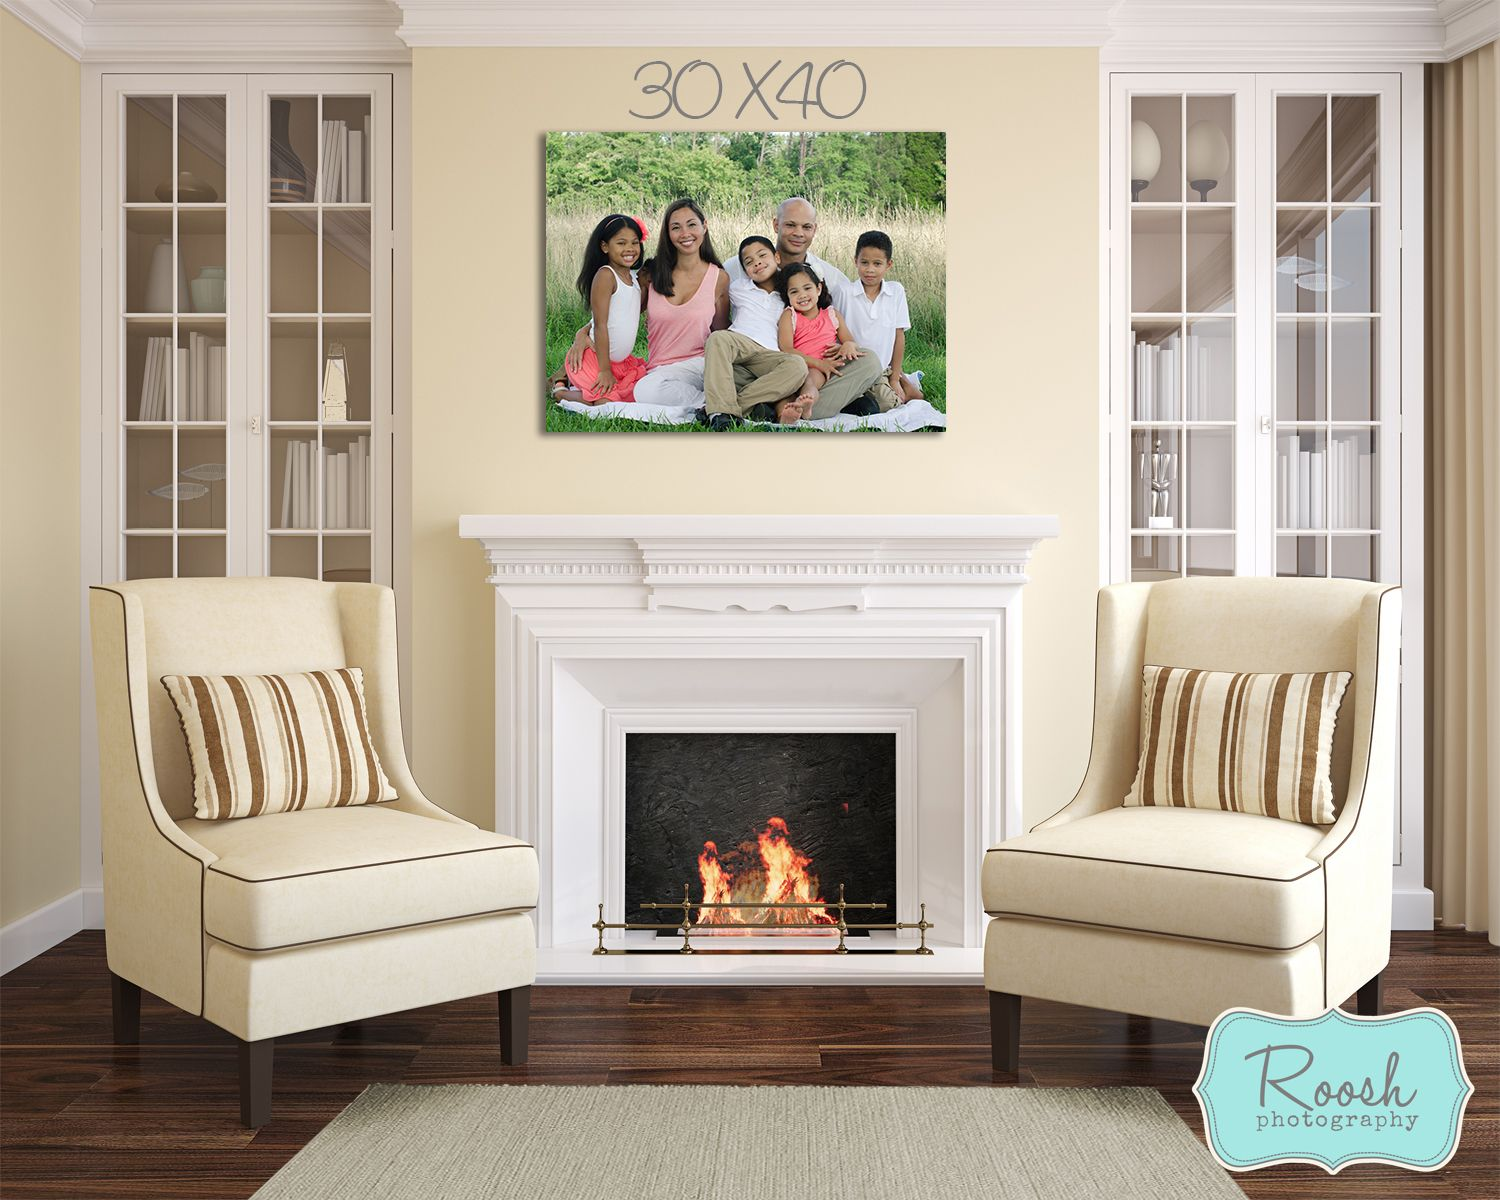 20 best Decorating with Portraits images on Pinterest